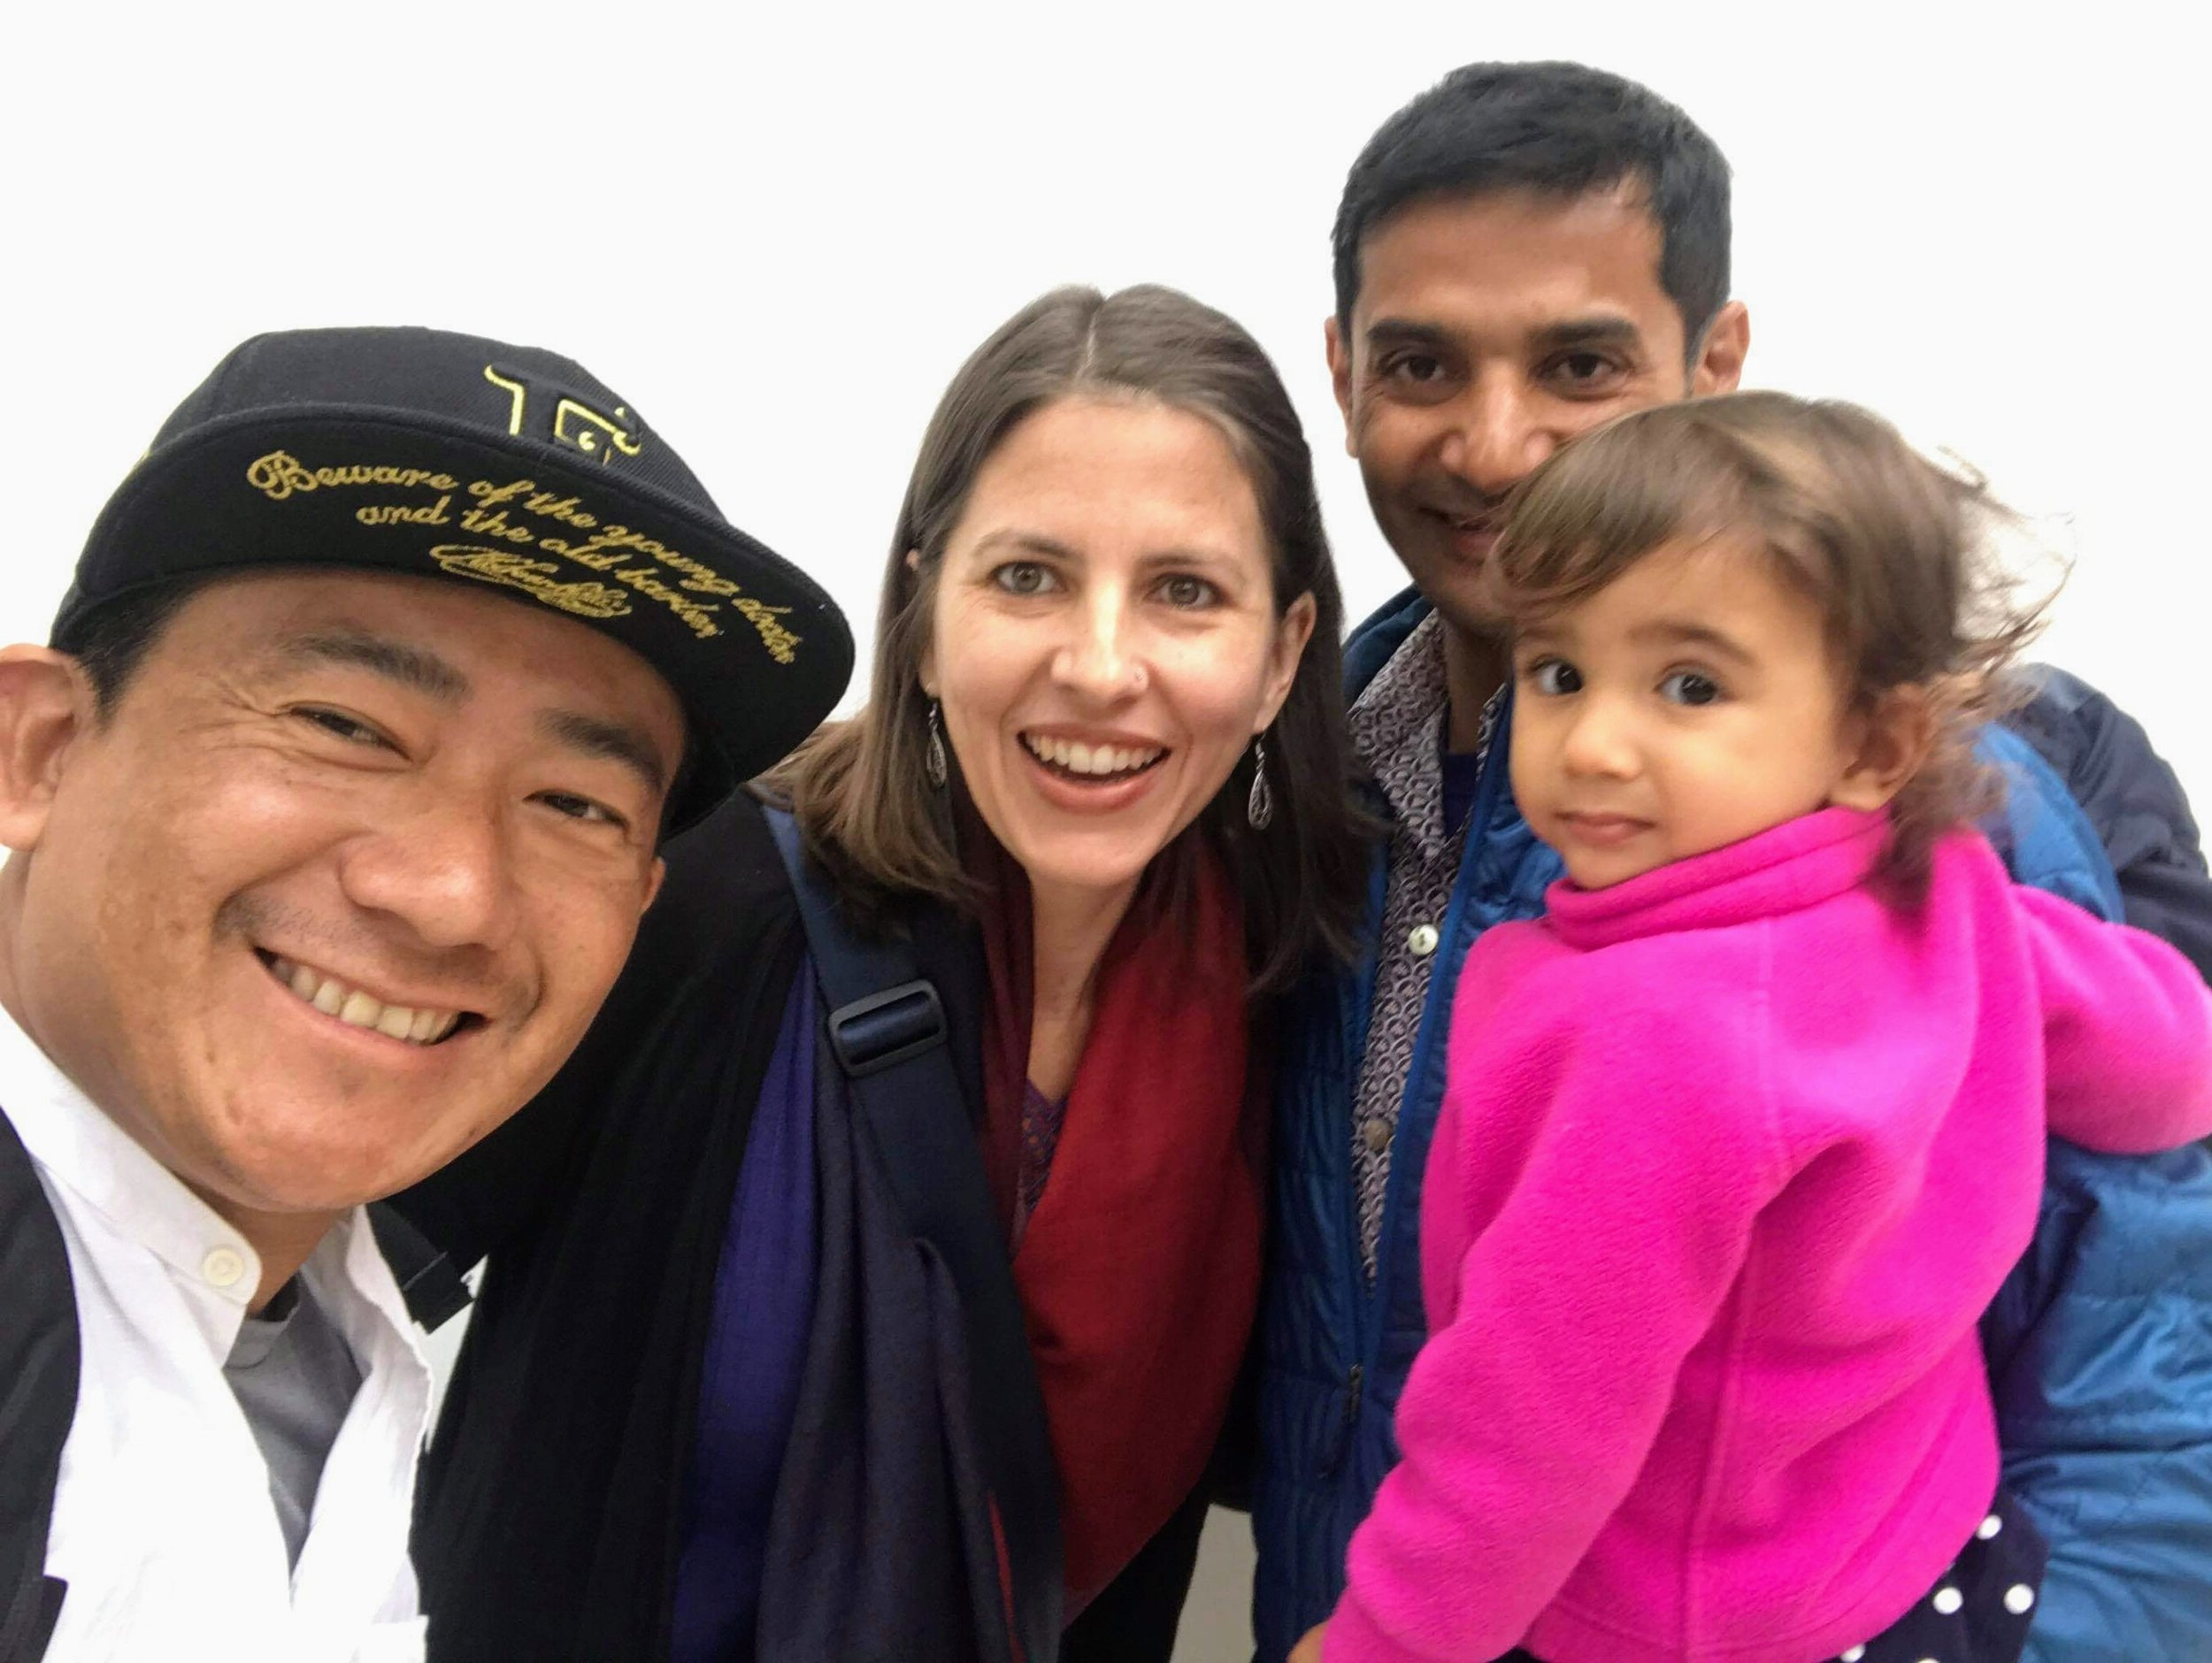 We were grateful that our friend and teammate, Bishnu Gurung, happened to be in Delhi and could join us.